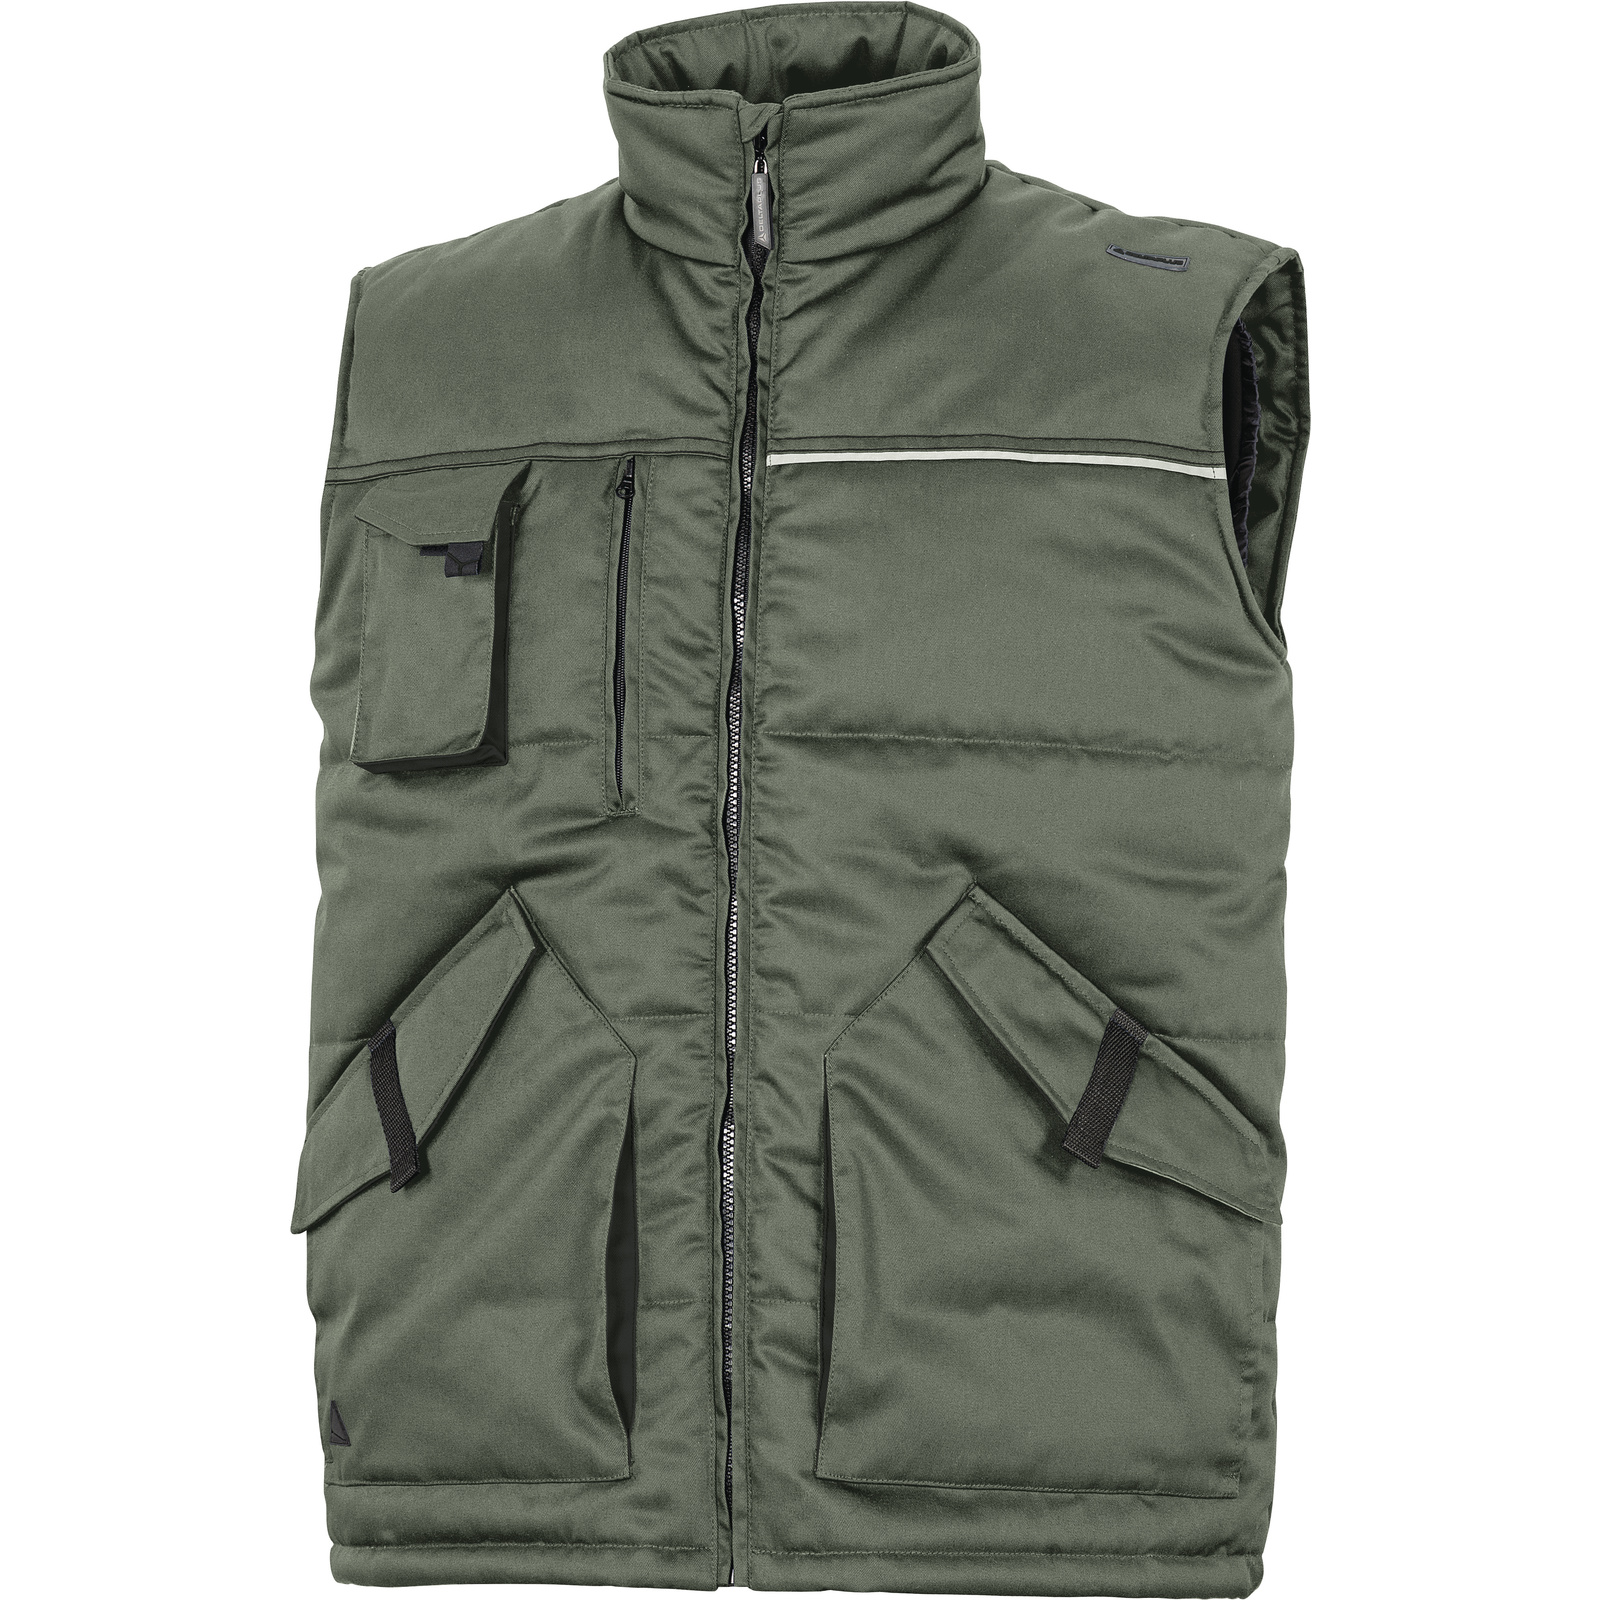 Gilet chaud multipoches (2)